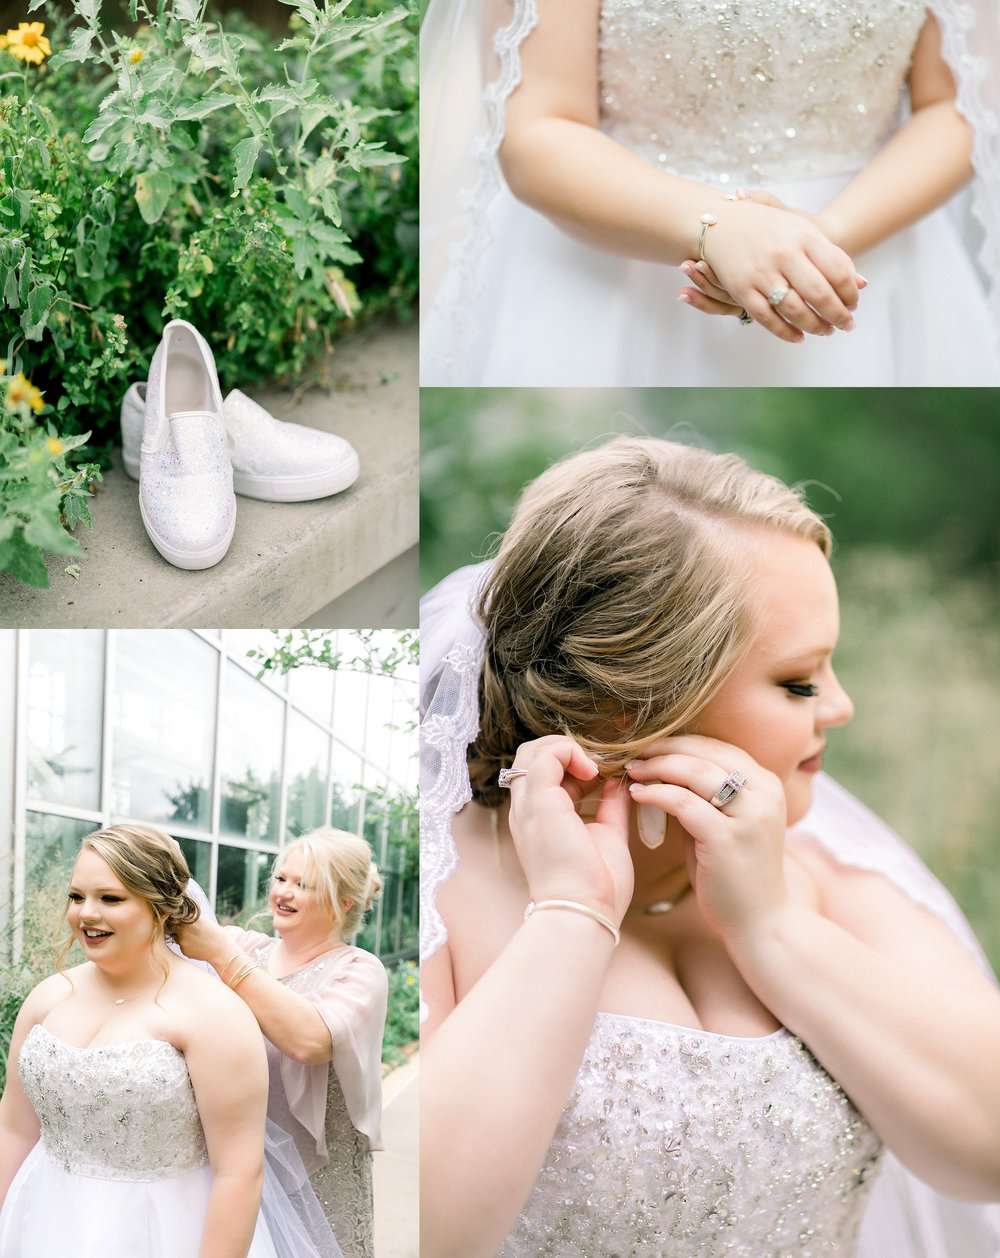 Ryanne-and-william-wedding-at-river-bend-nature-center-wichita-falls-texas-two-clever-chicks-0017.jpg